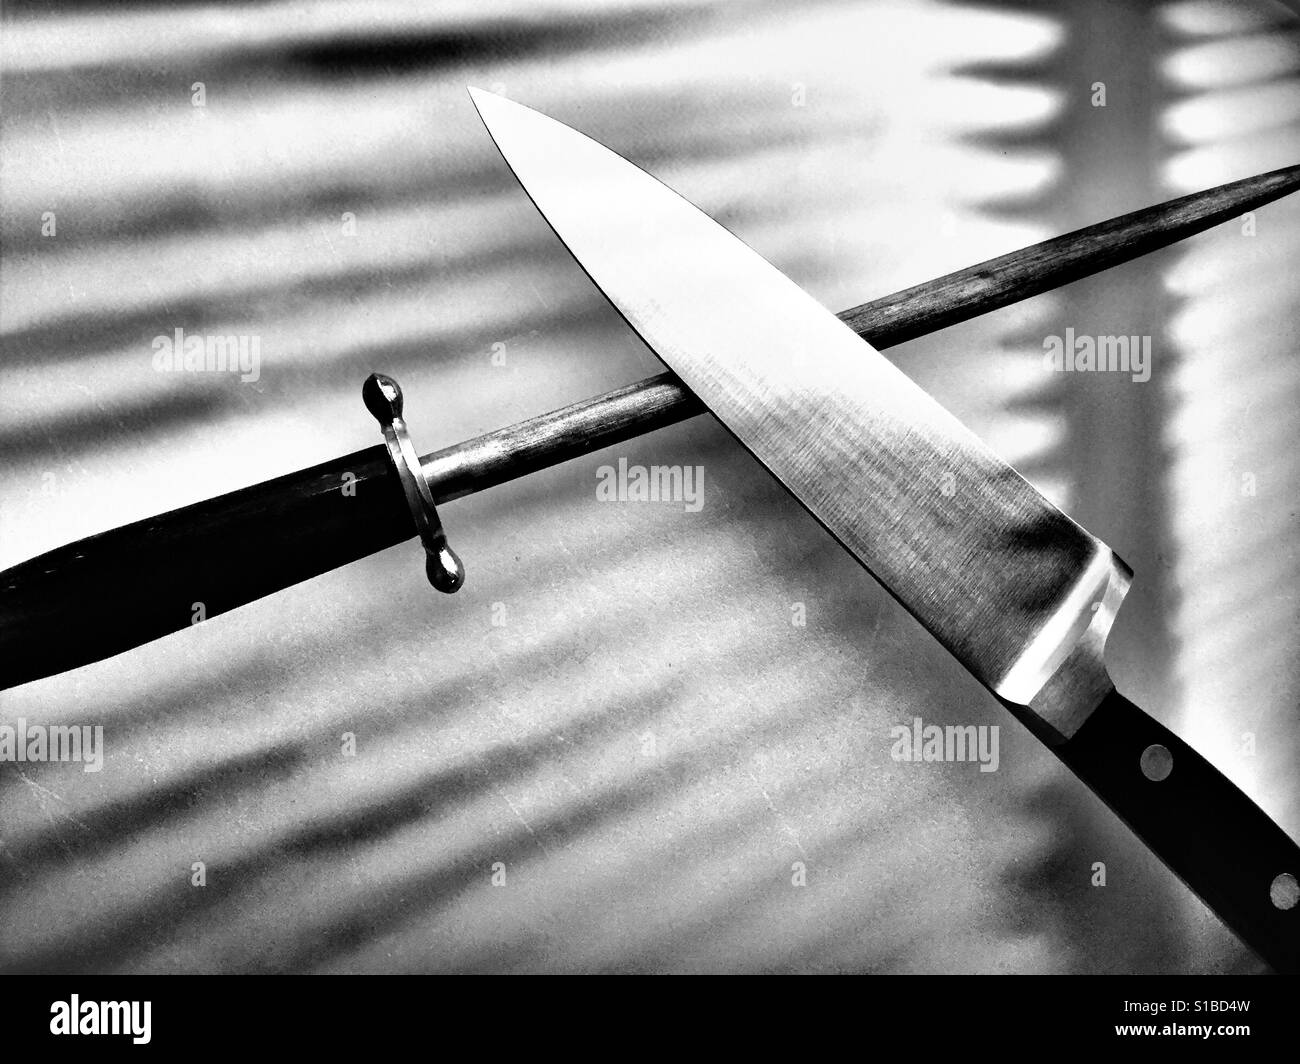 Sharpening Black and White Stock Photos & Images - Alamy